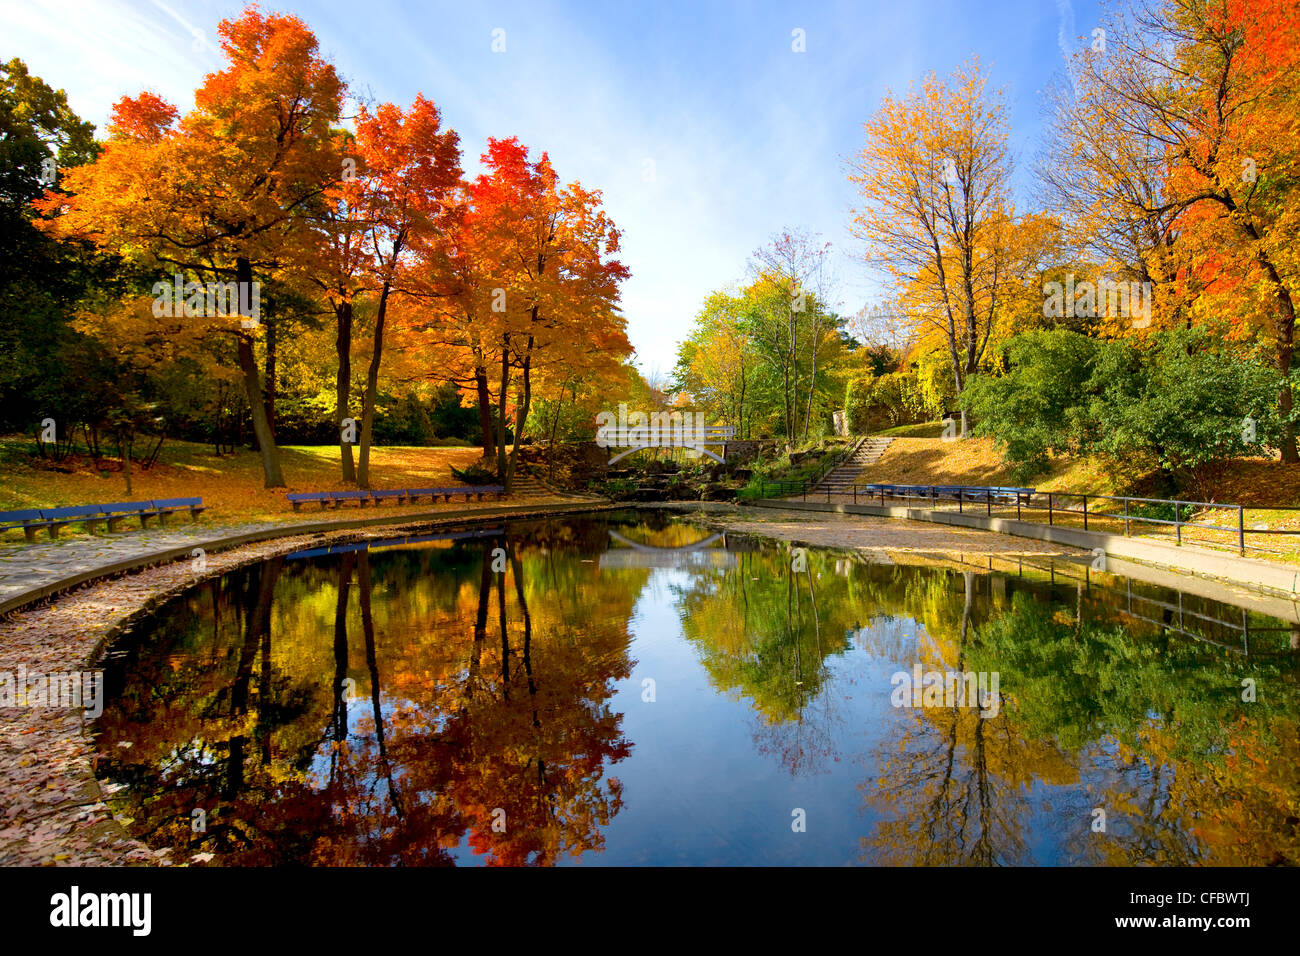 1920x1080 Fall Urban Wallpaper Pond In Autumn In Jean Drapeau Park Montreal Quebec